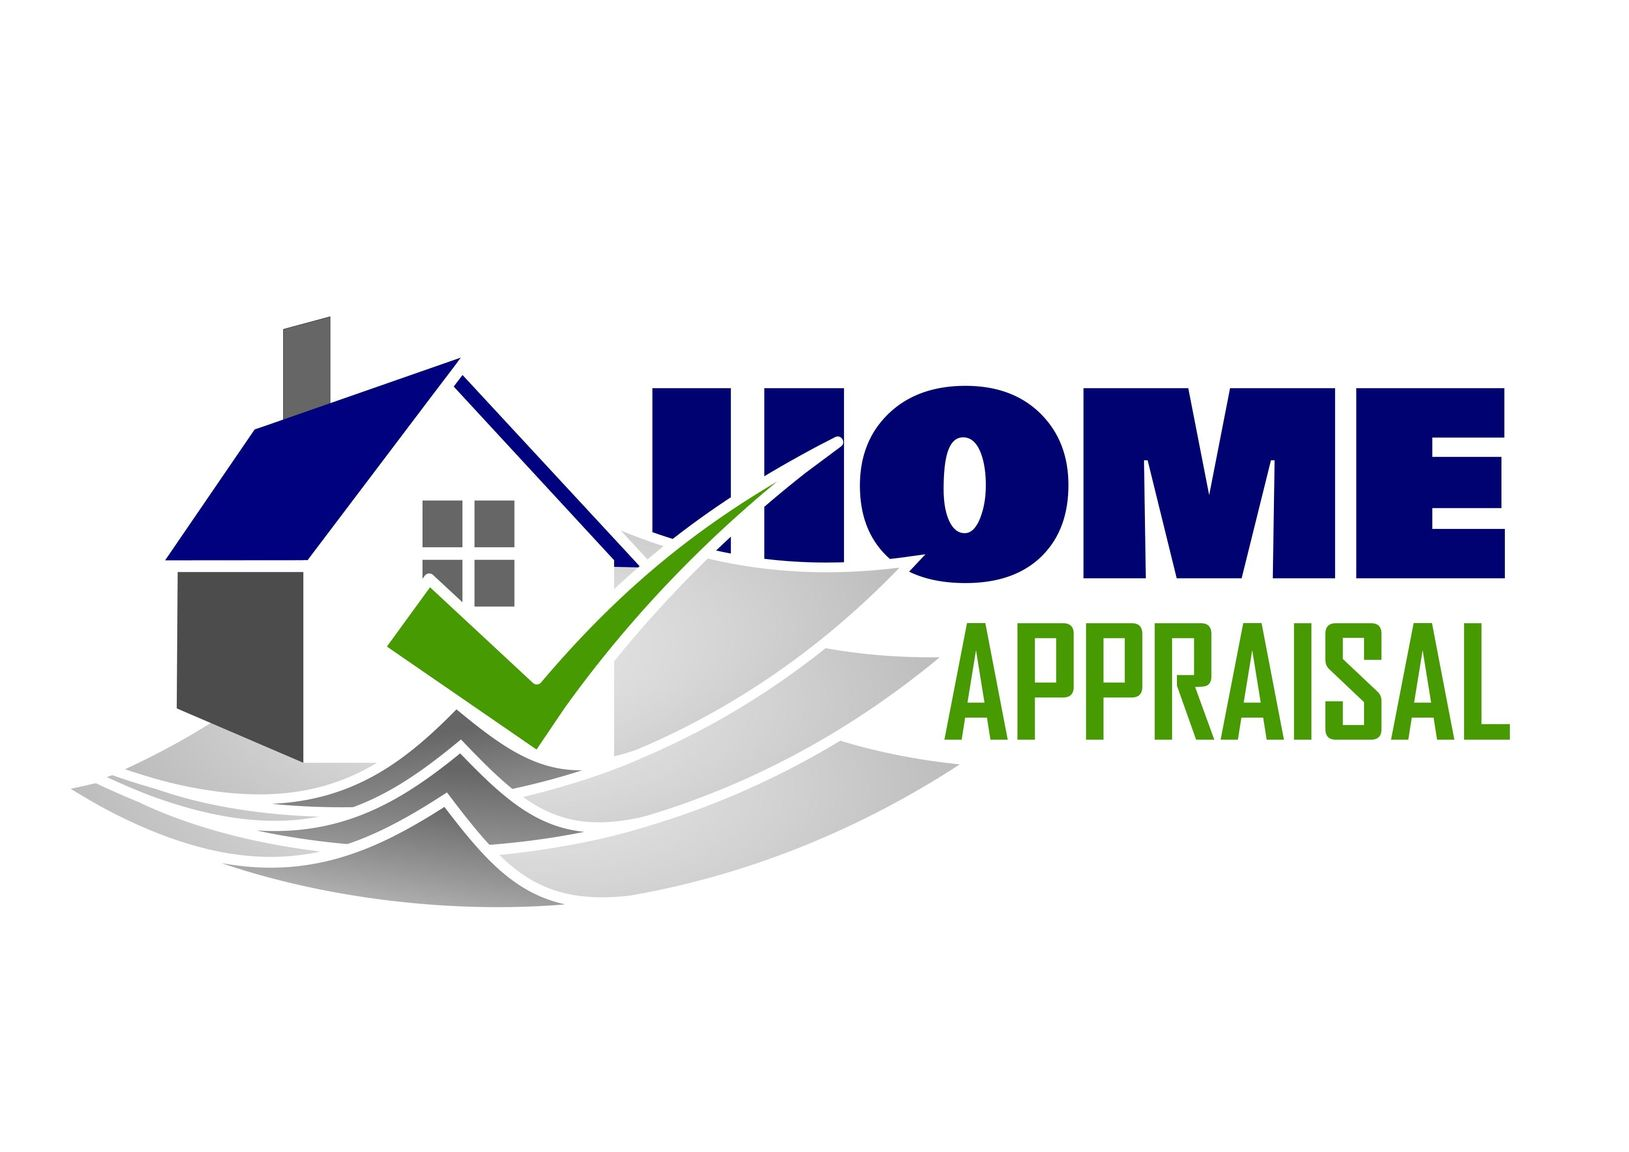 okc appraisal services